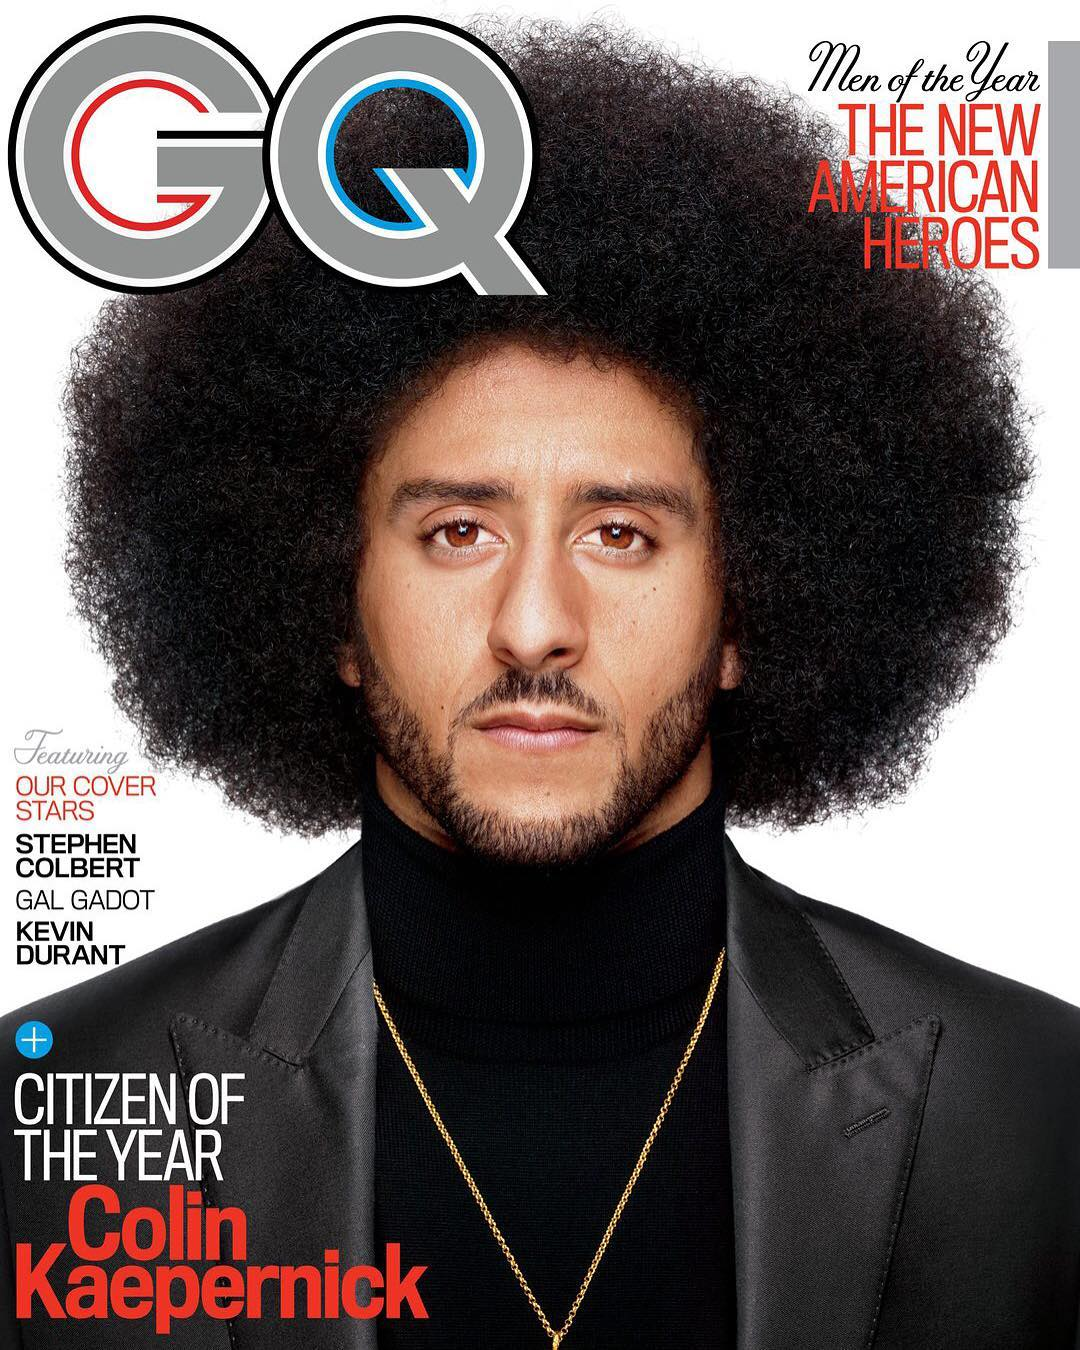 GQ names Colin Kaepernick their Citizen of the Year. https://t.co/HrwCubufO5 https://t.co/8ILwietaCw